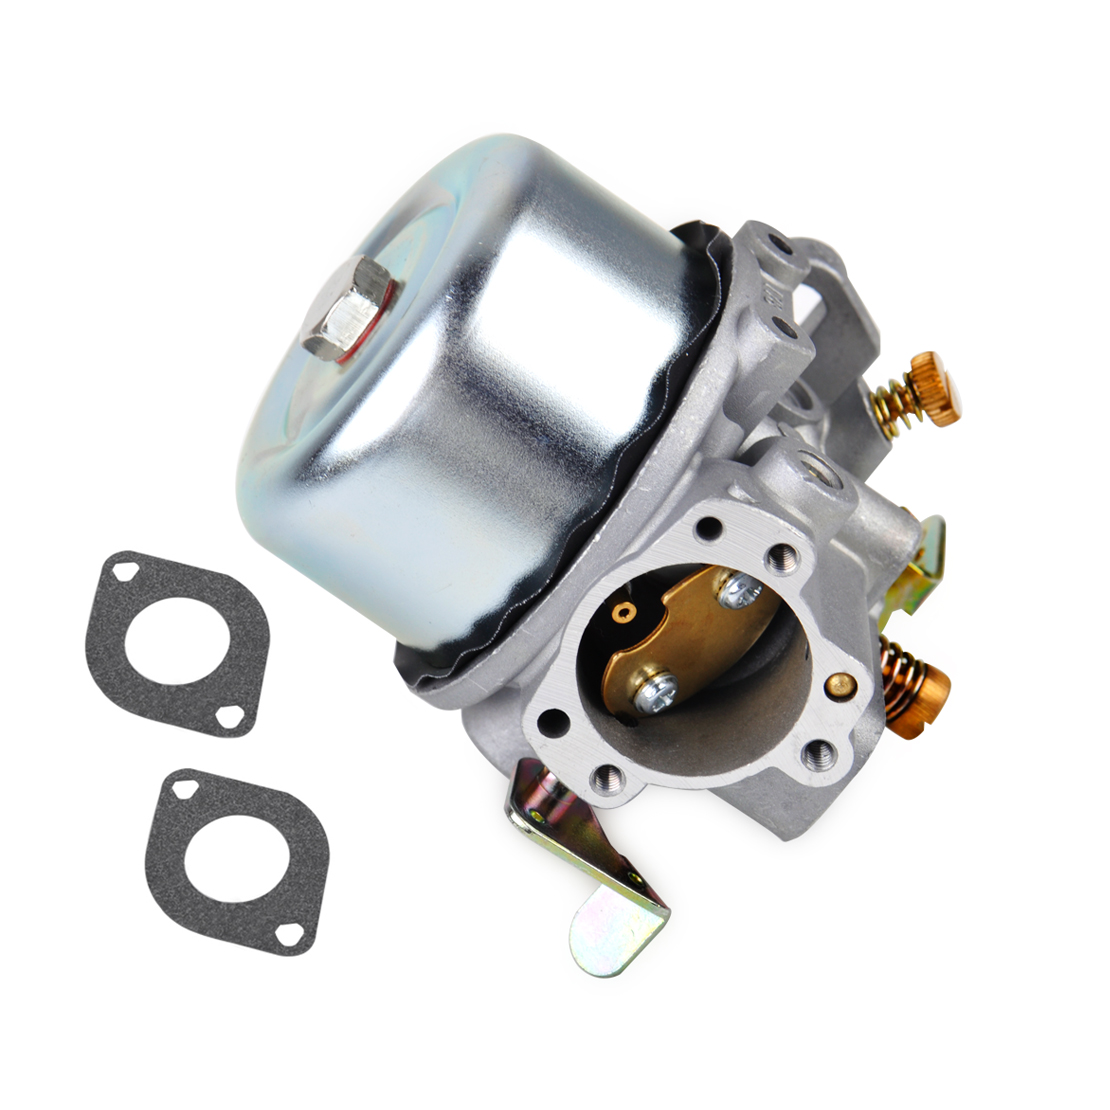 Letaosk Carburetor With Gasket Fit For Kohler K90 K91 K141 K160 K161 Engine Schematics K181 46 853 01 S 053 03 Lawn Mower Tractor In Tool Parts From Tools On